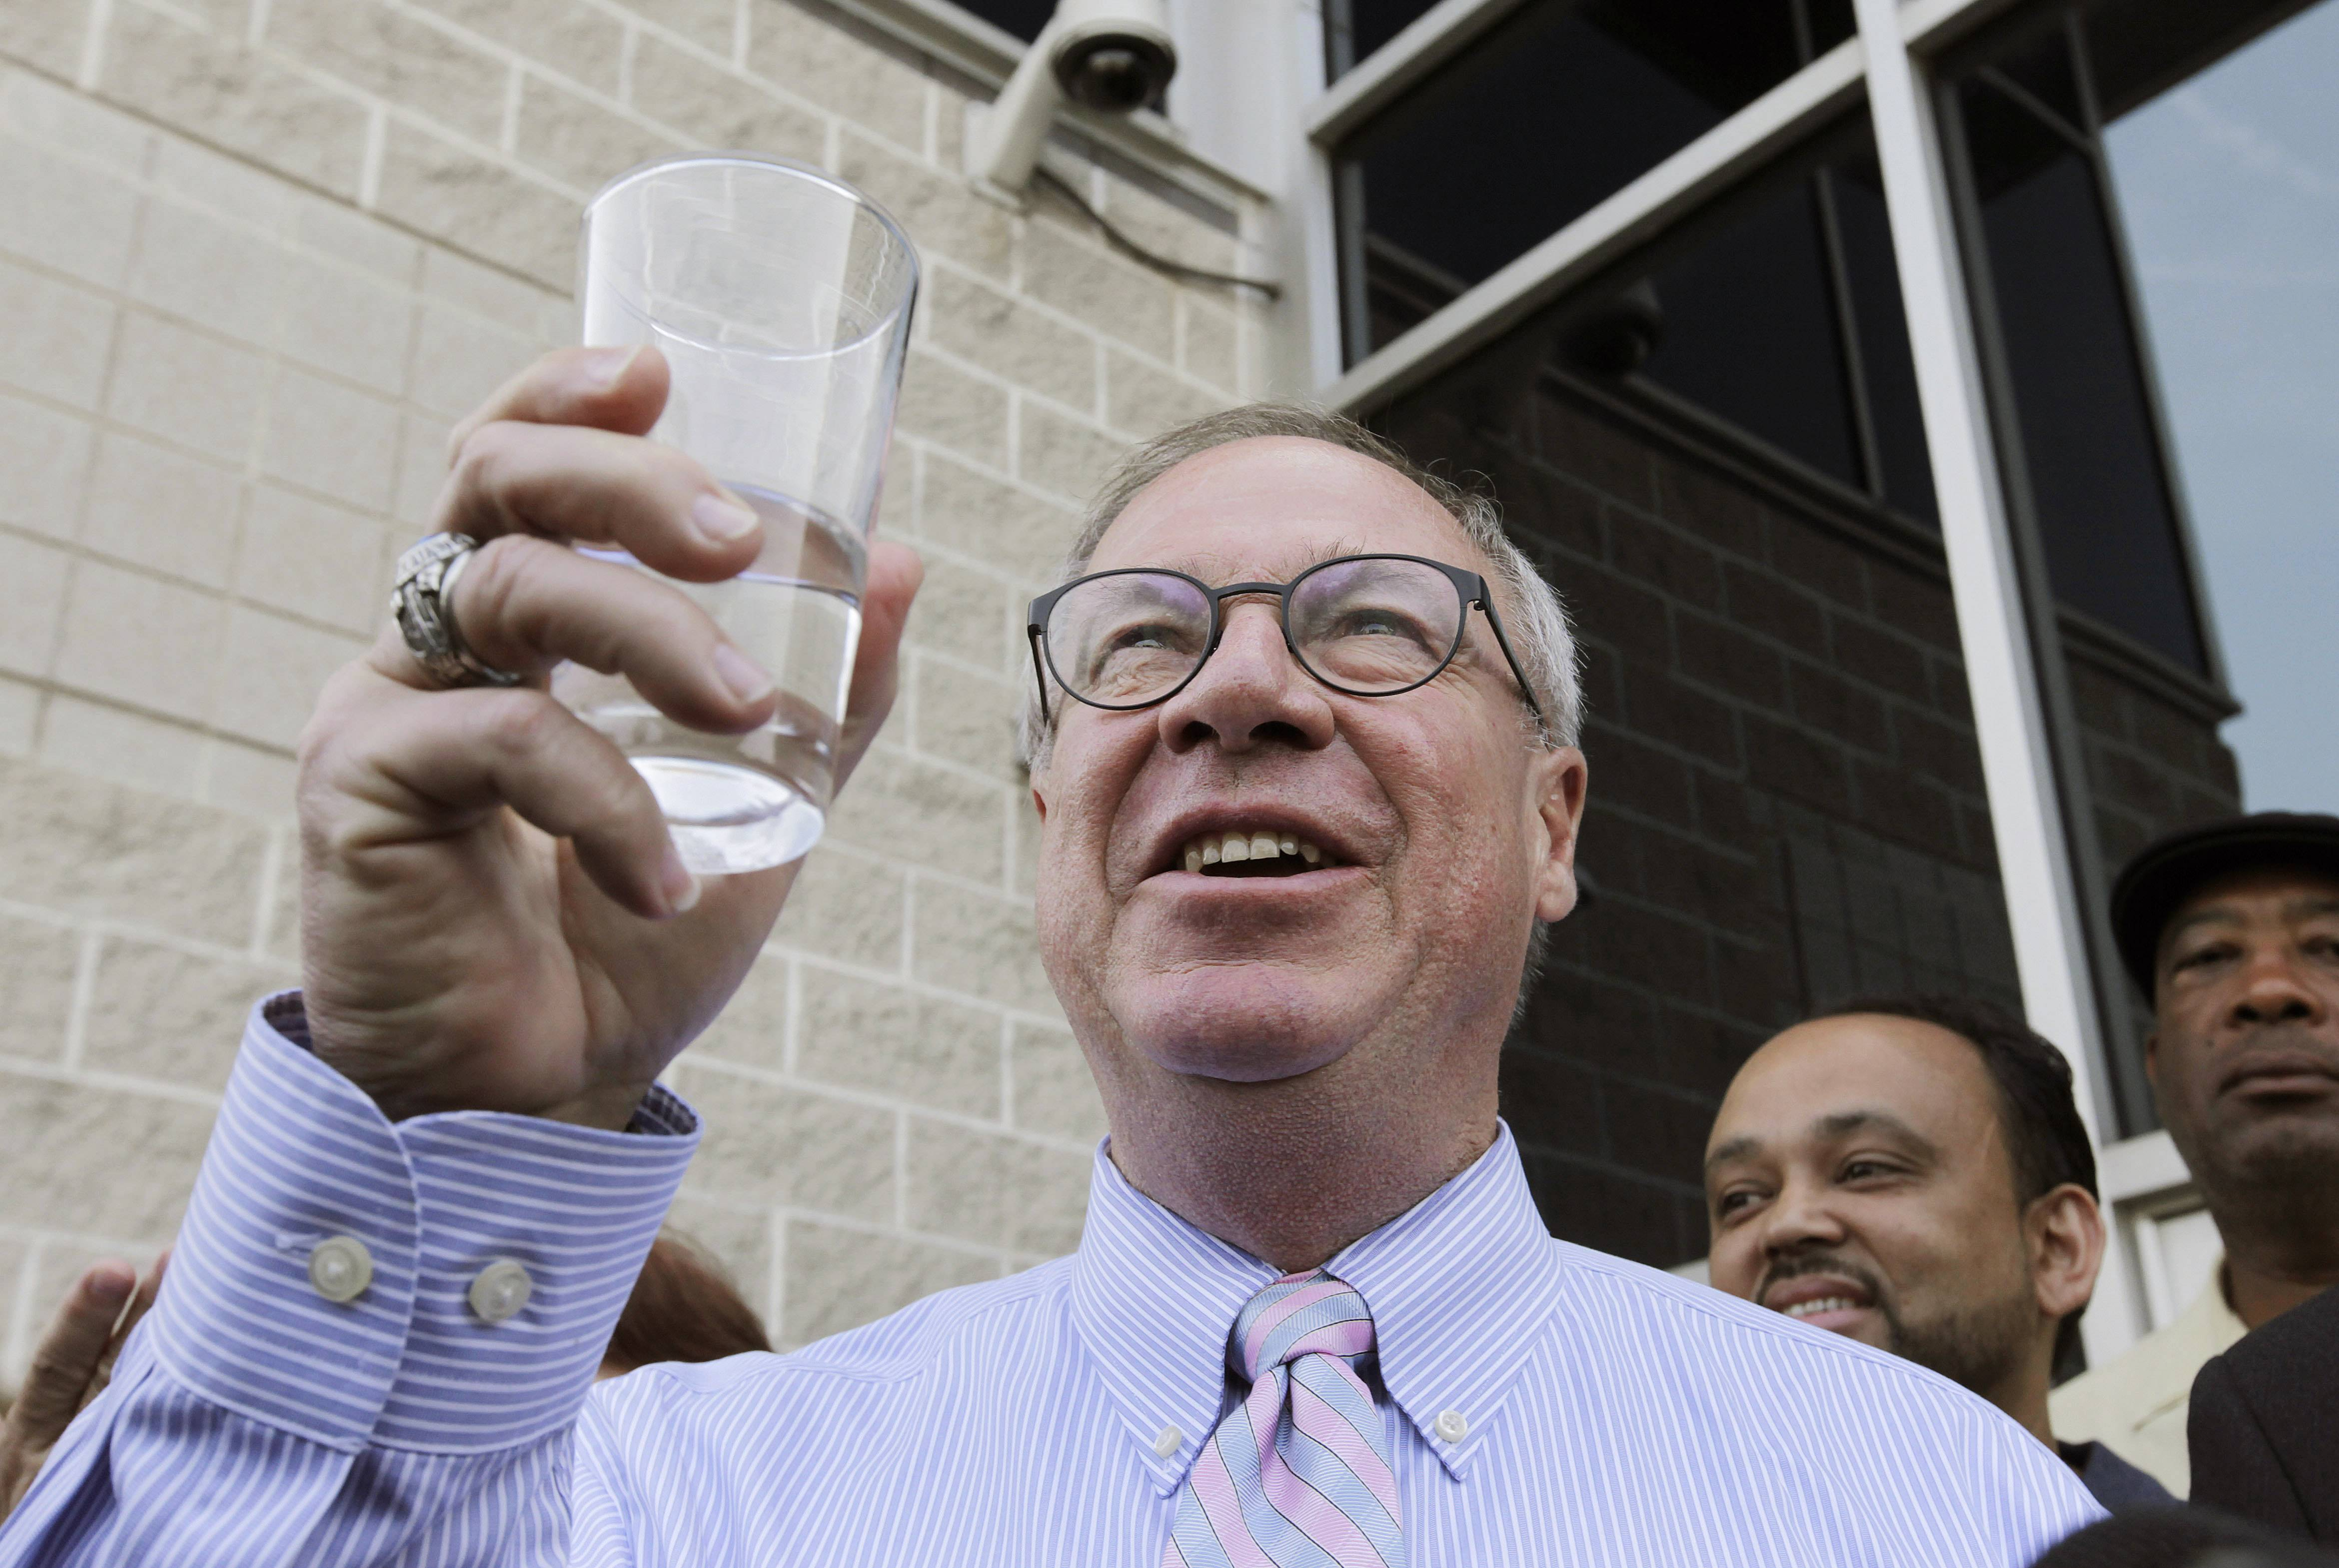 Toledo Mayor D. Michael Collins raises a glass of tap water before drinking it during a news conference in Toledo, Ohio, Monday. A water ban that had hundreds of thousands of people in Ohio and Michigan scrambling for drinking water has been lifted, Collins announced Monday.